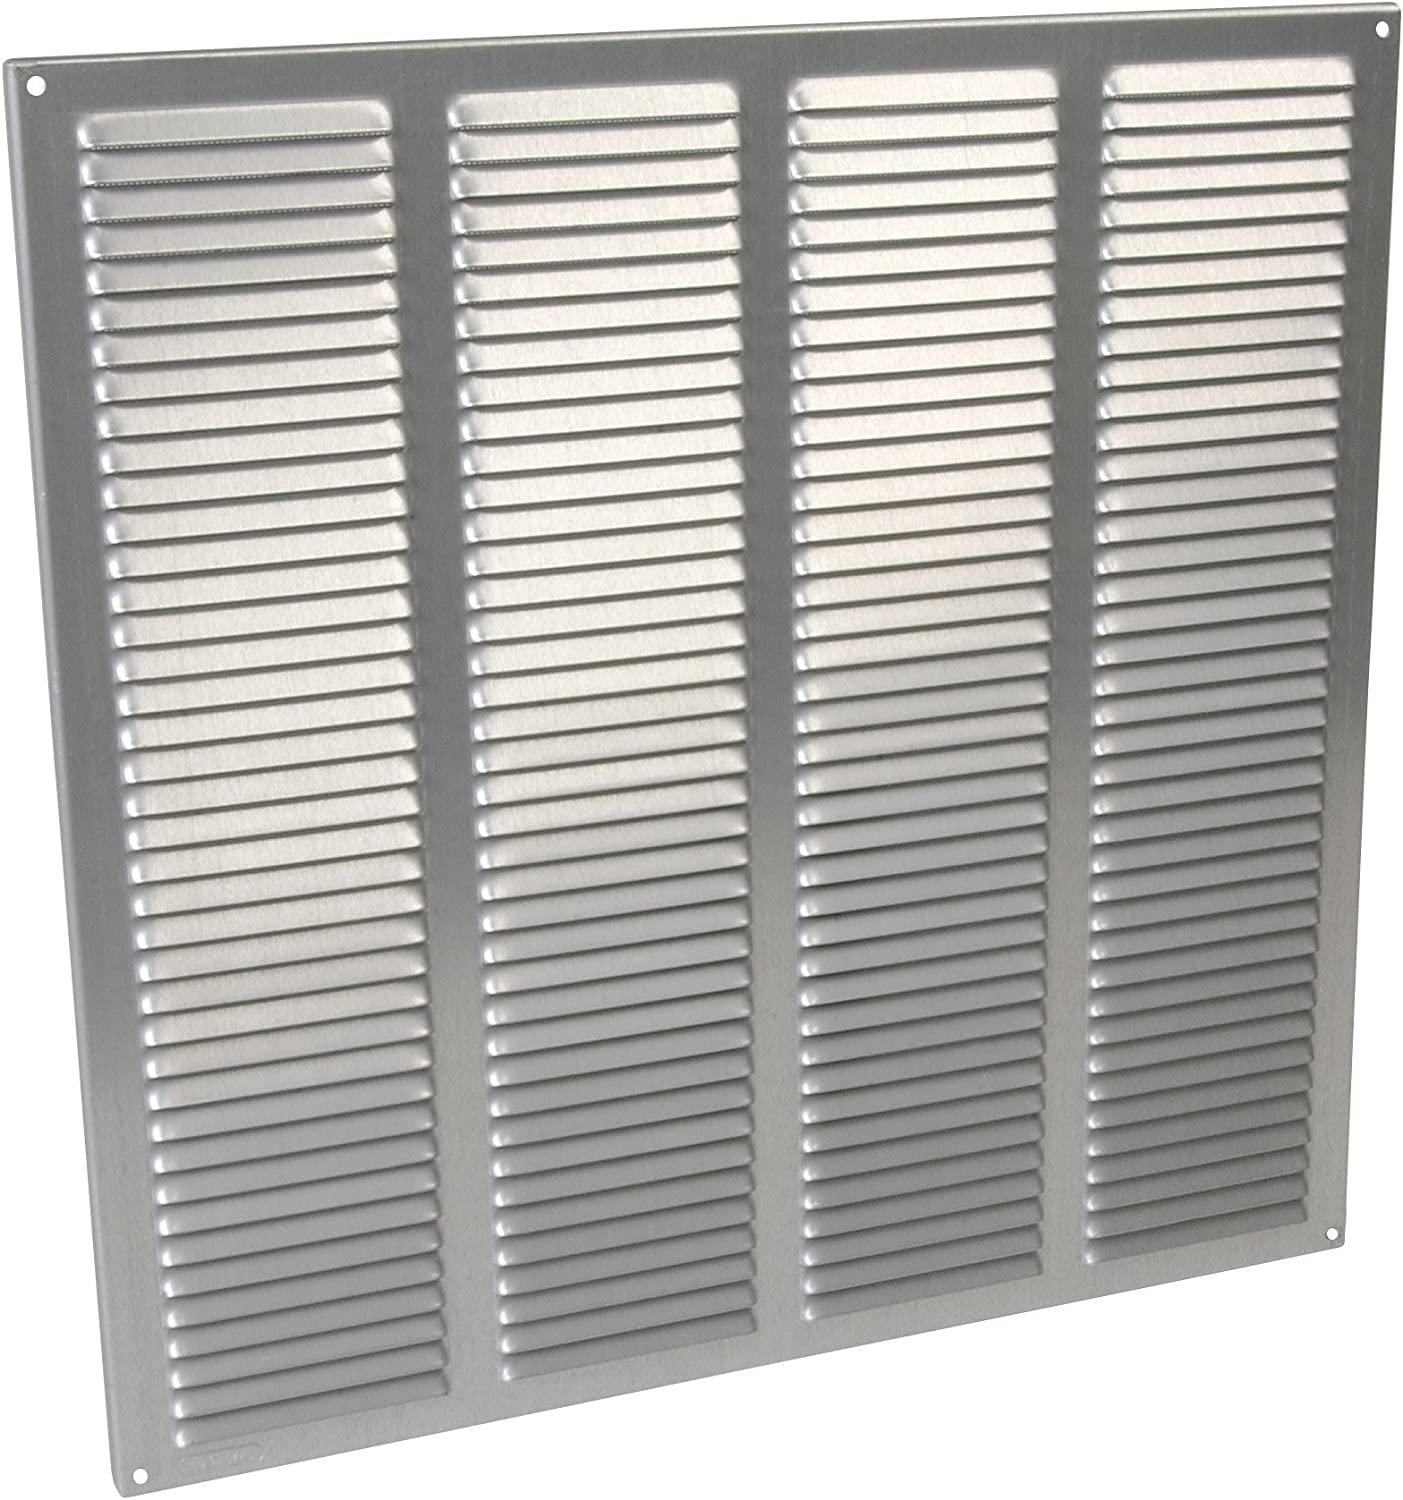 Nicoll 71704 Grille persienne alu gris 39x40 lm3940g